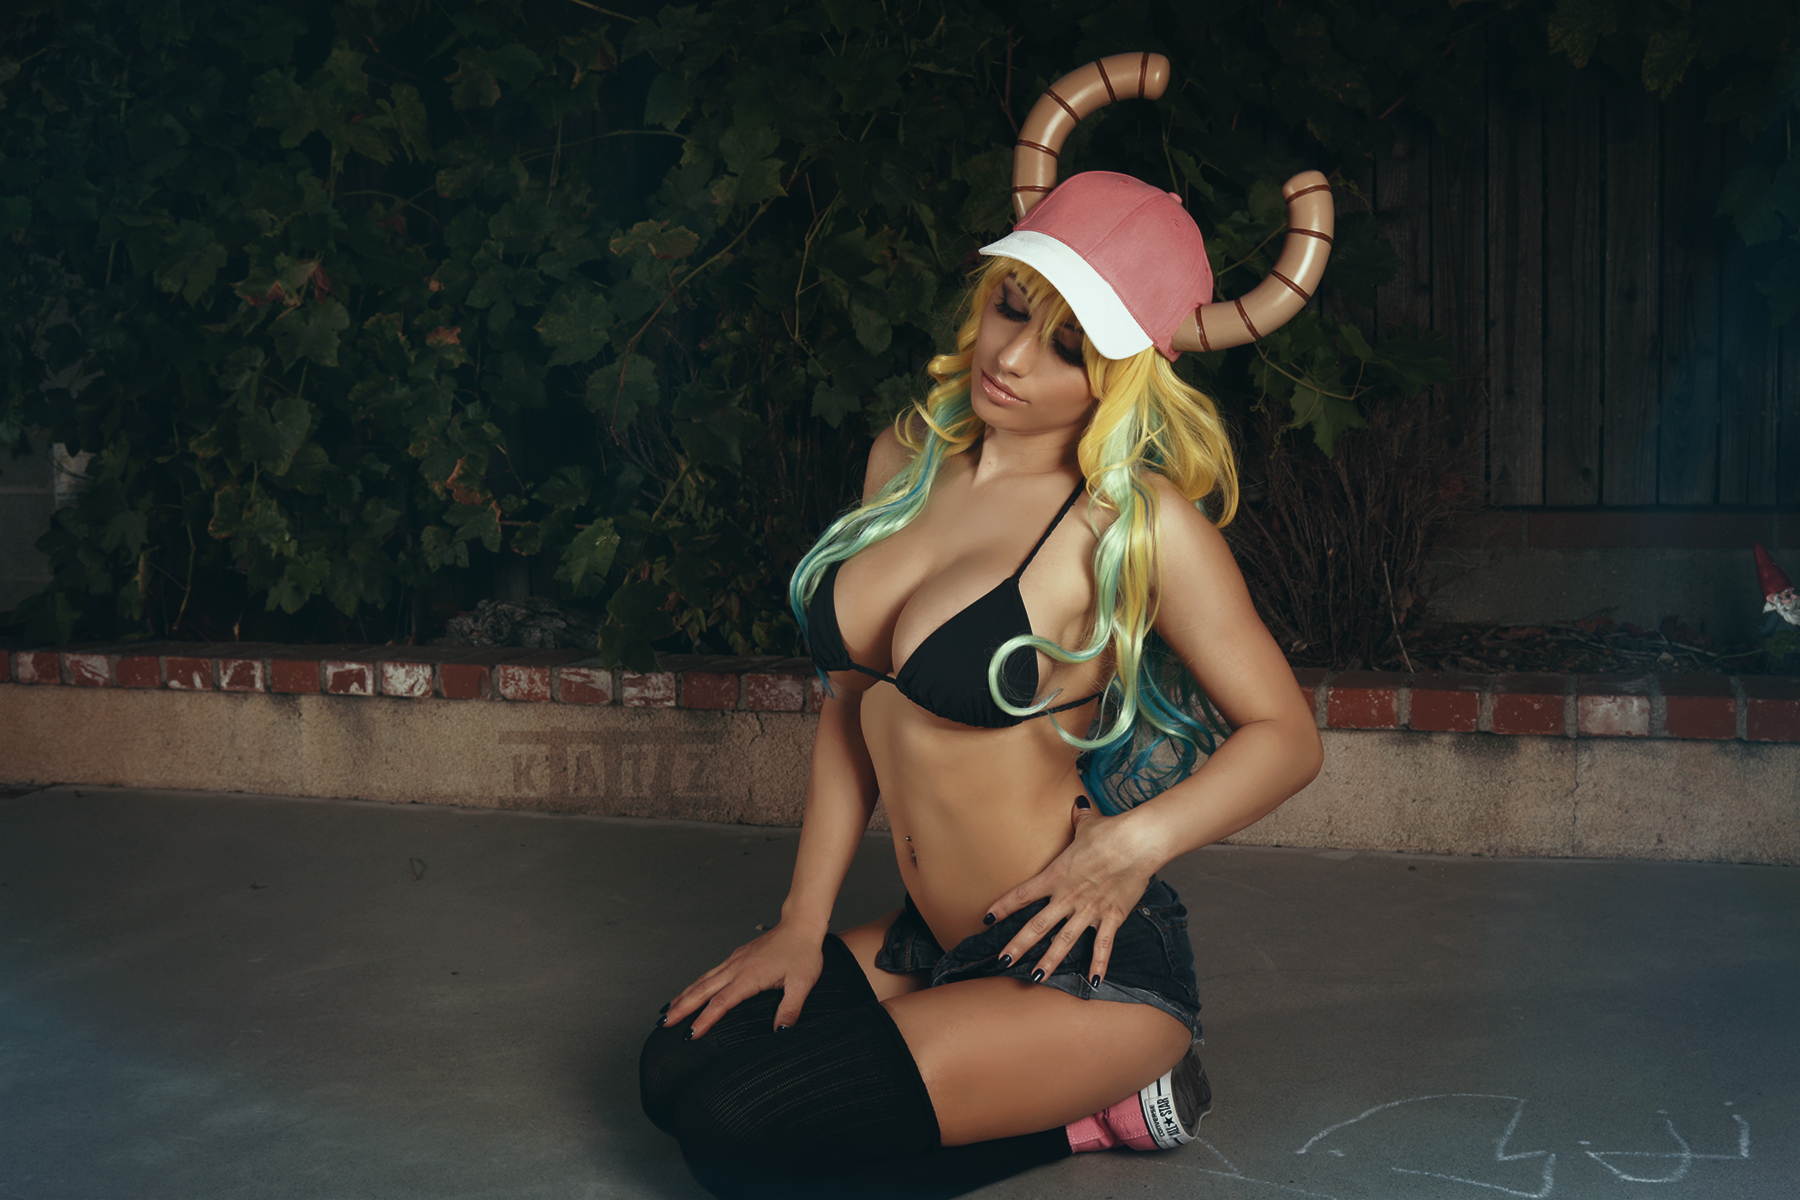 Quetzalcoatl aka Lucoa Cosplay from Miss Miss Kobayashi's Dragon Maid by Liz Katz and Soda Props.